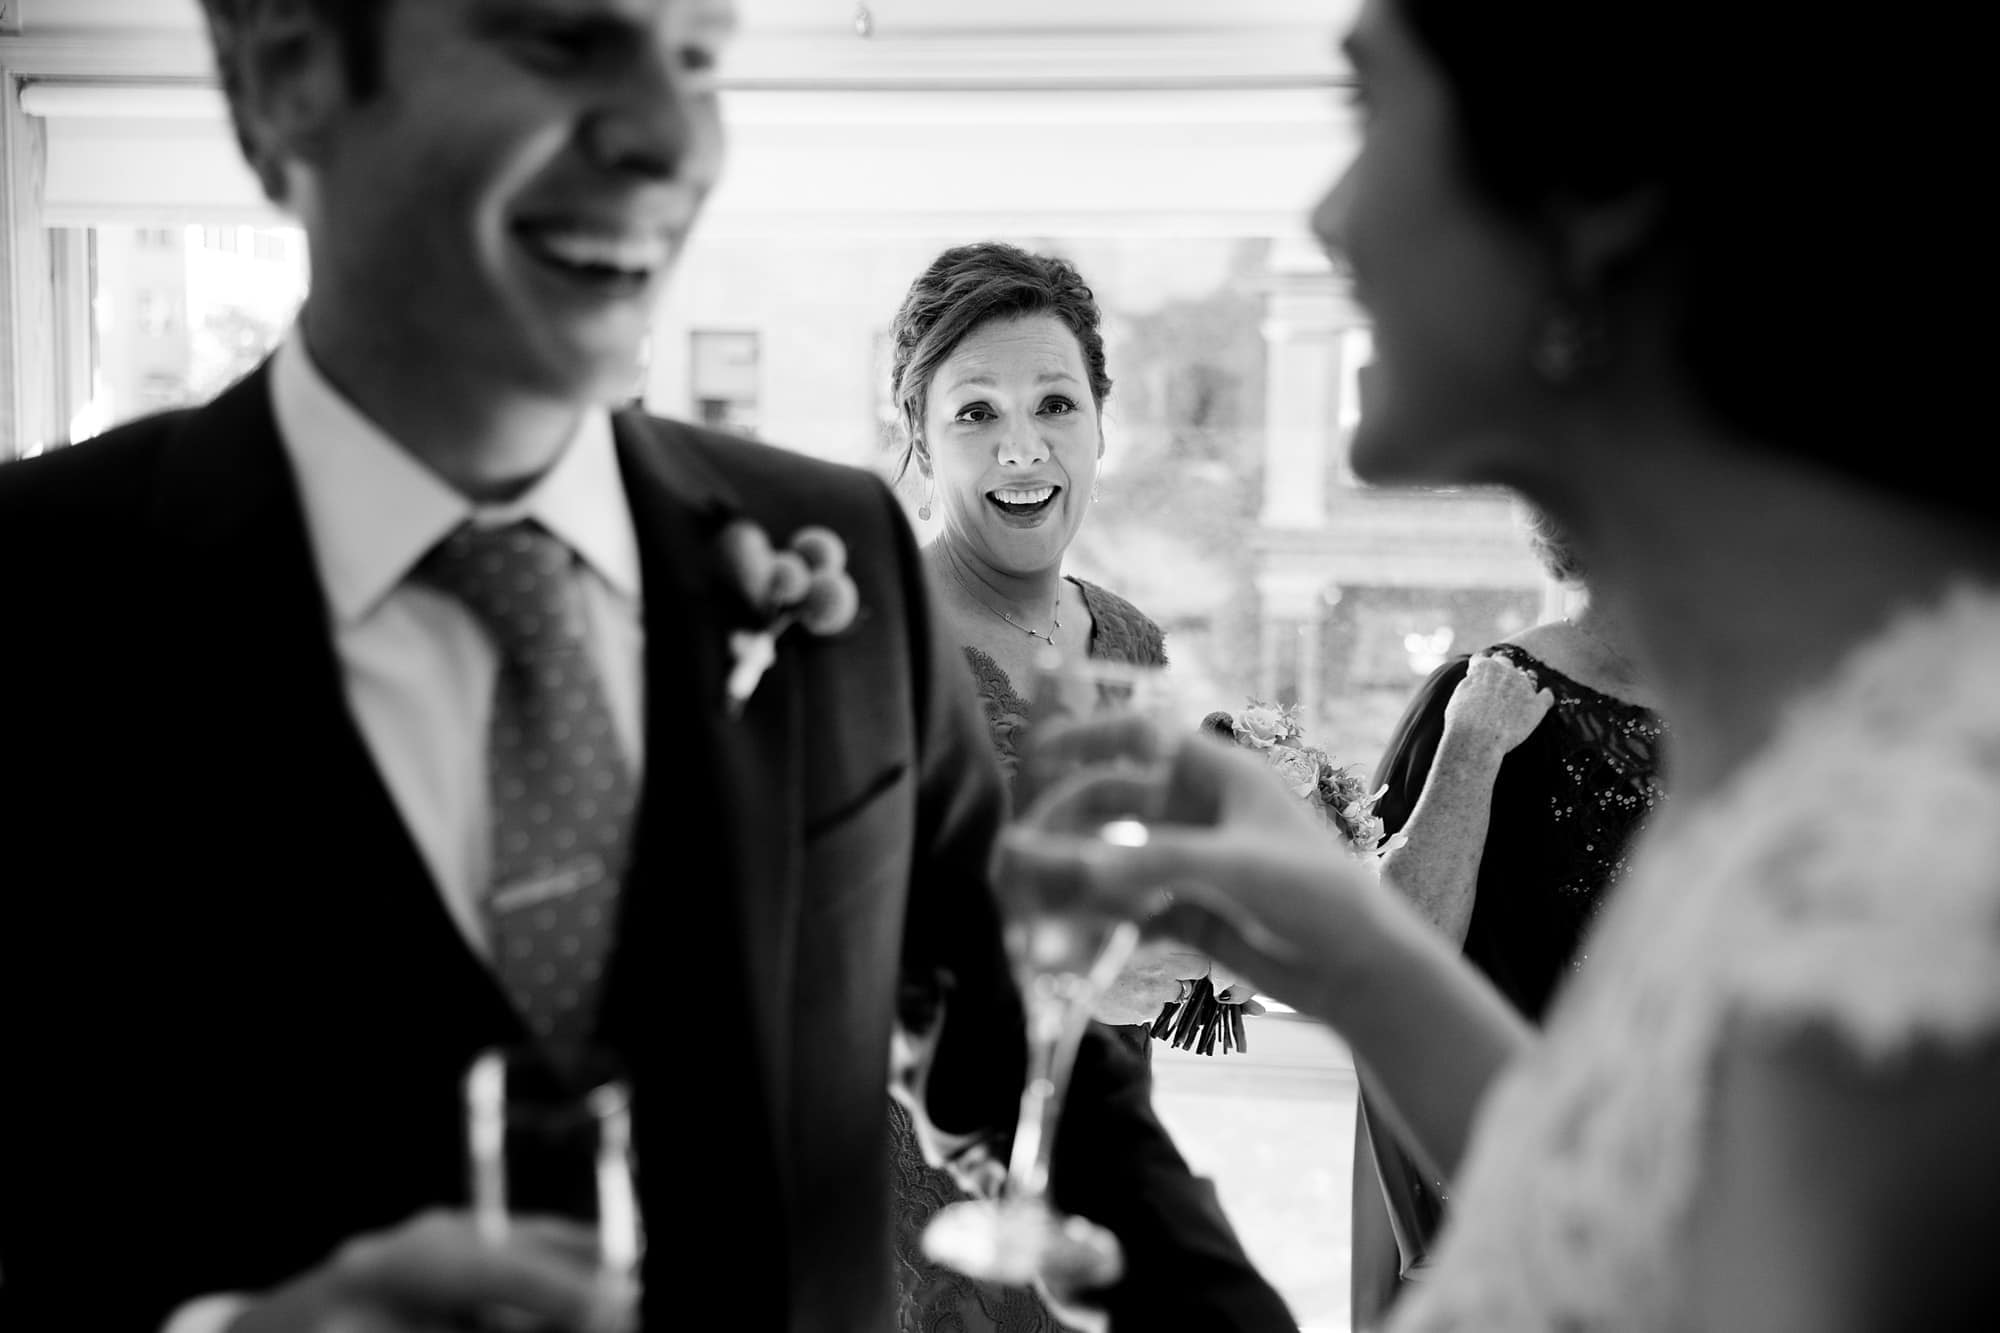 The sister of the groom laughs after the ceremony